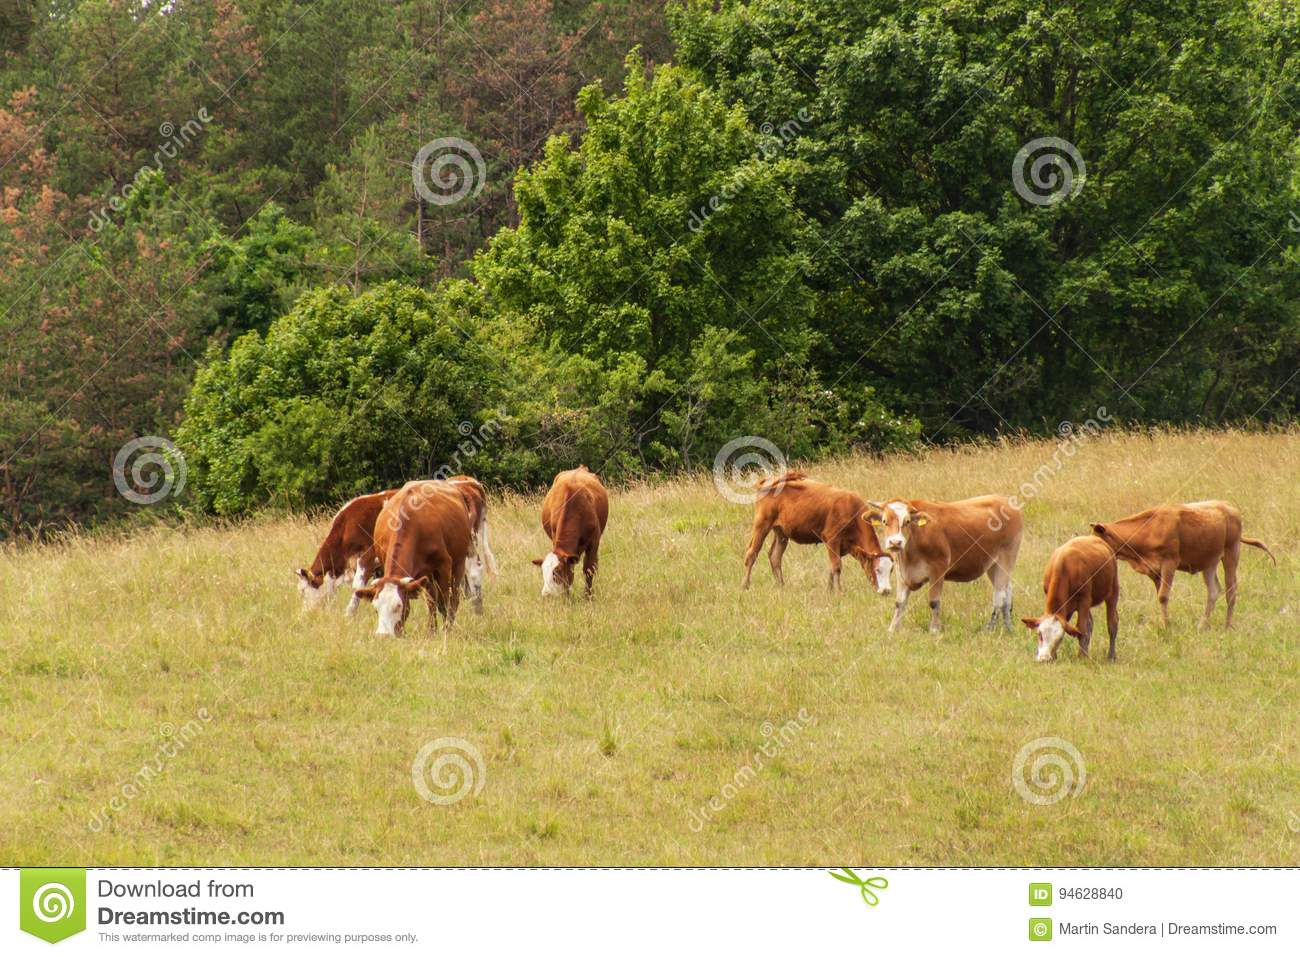 Cows on pasture at the woods. Cattle farming in the Czech Republic.